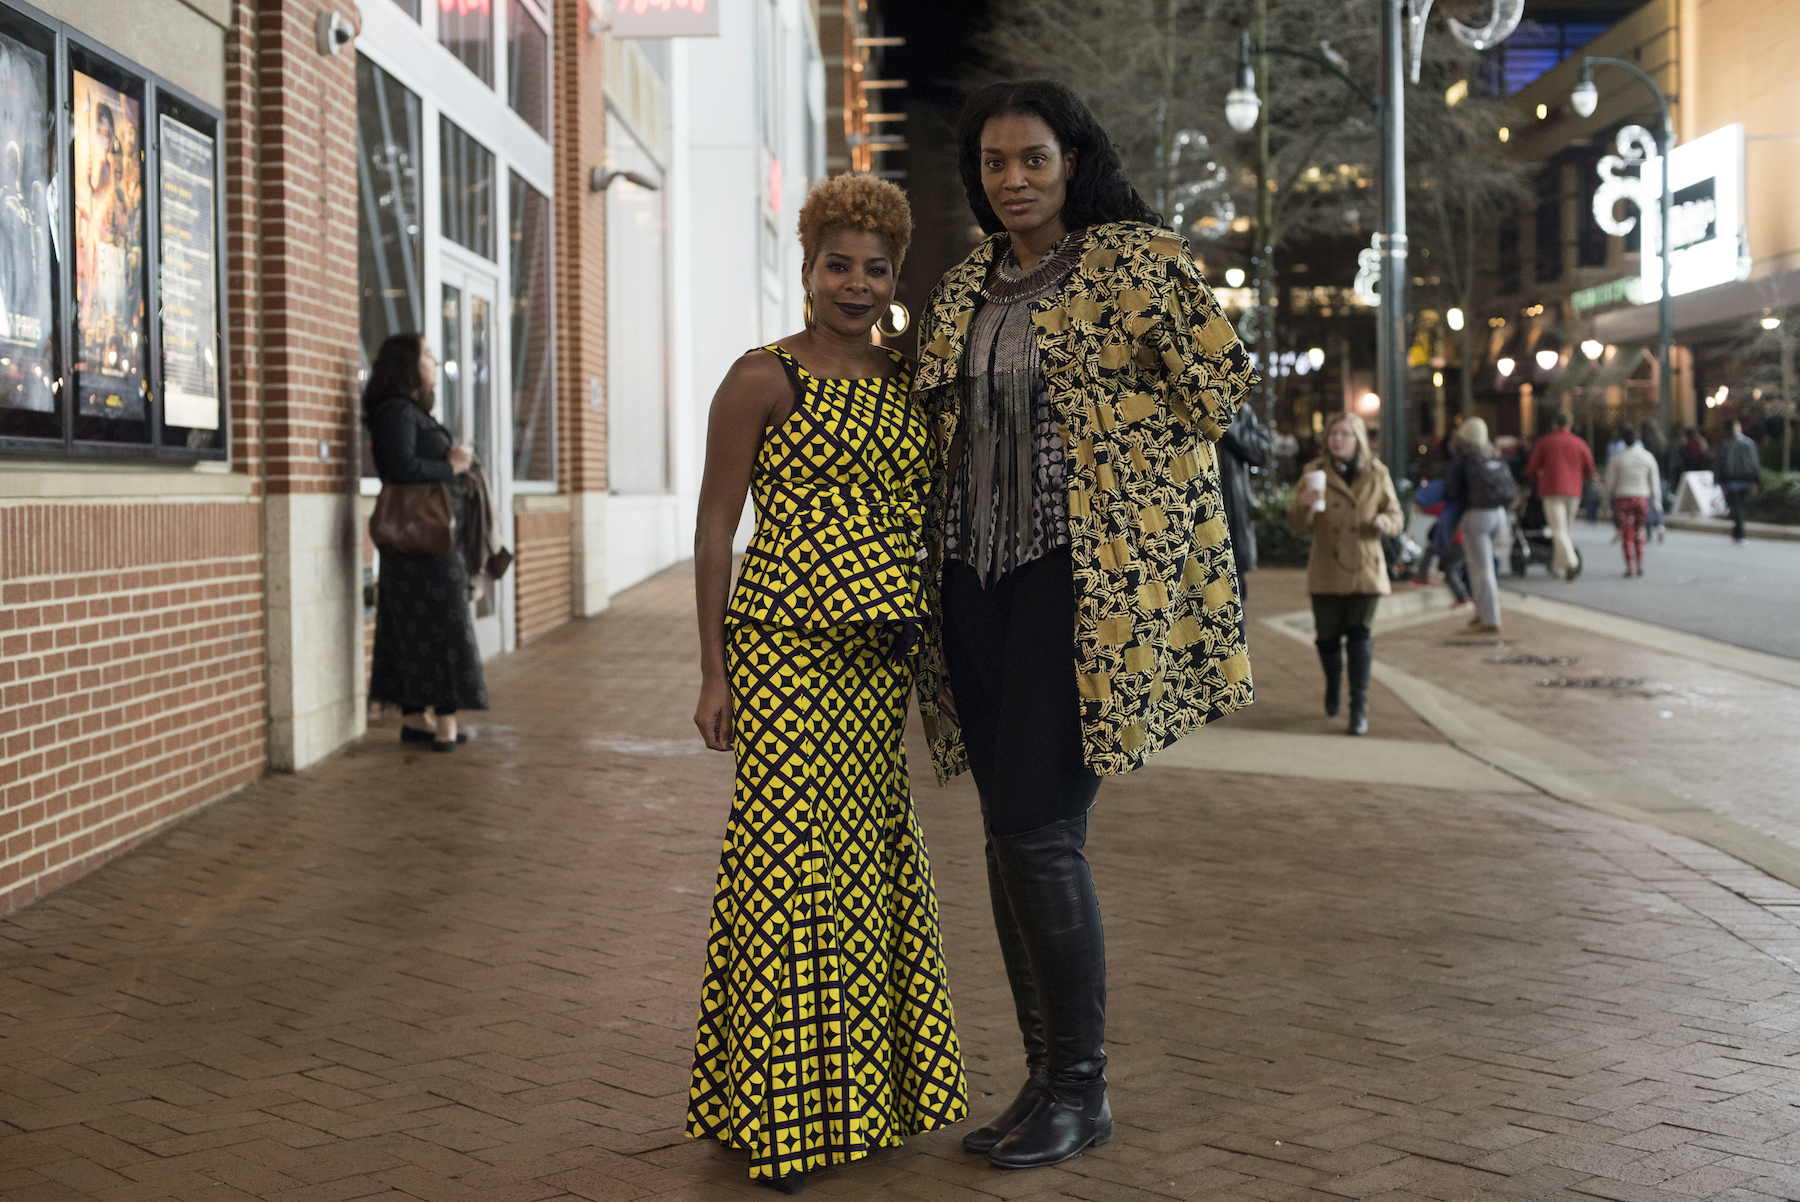 "<div class=""meta image-caption""><div class=""origin-logo origin-image ap""><span>AP</span></div><span class=""caption-text"">Allyson Little and Melissa Williams-Valrie, dressed in Wakanda-inspired attire, pose for a portrait before seeing Black Panther in Silver Spring, Md., Thursday, Feb. 15, 2018. (AP Photo/Sait Serkan Gurbuz)</span></div>"